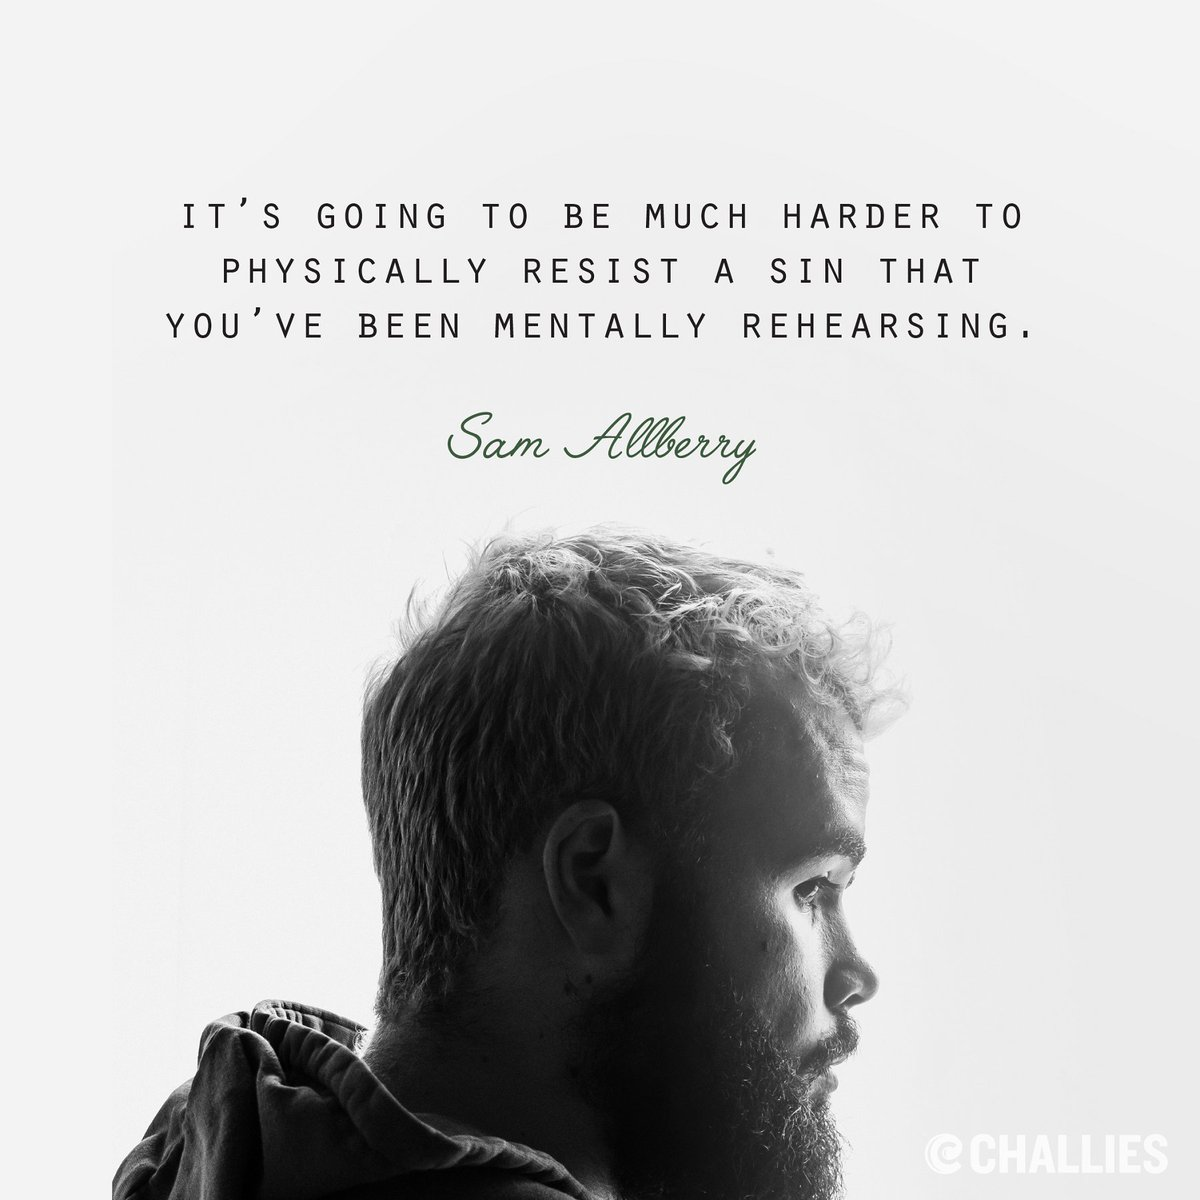 It's going to be much harder to physically resist a sin that you've been mentally rehearsing. (Sam Allberry)